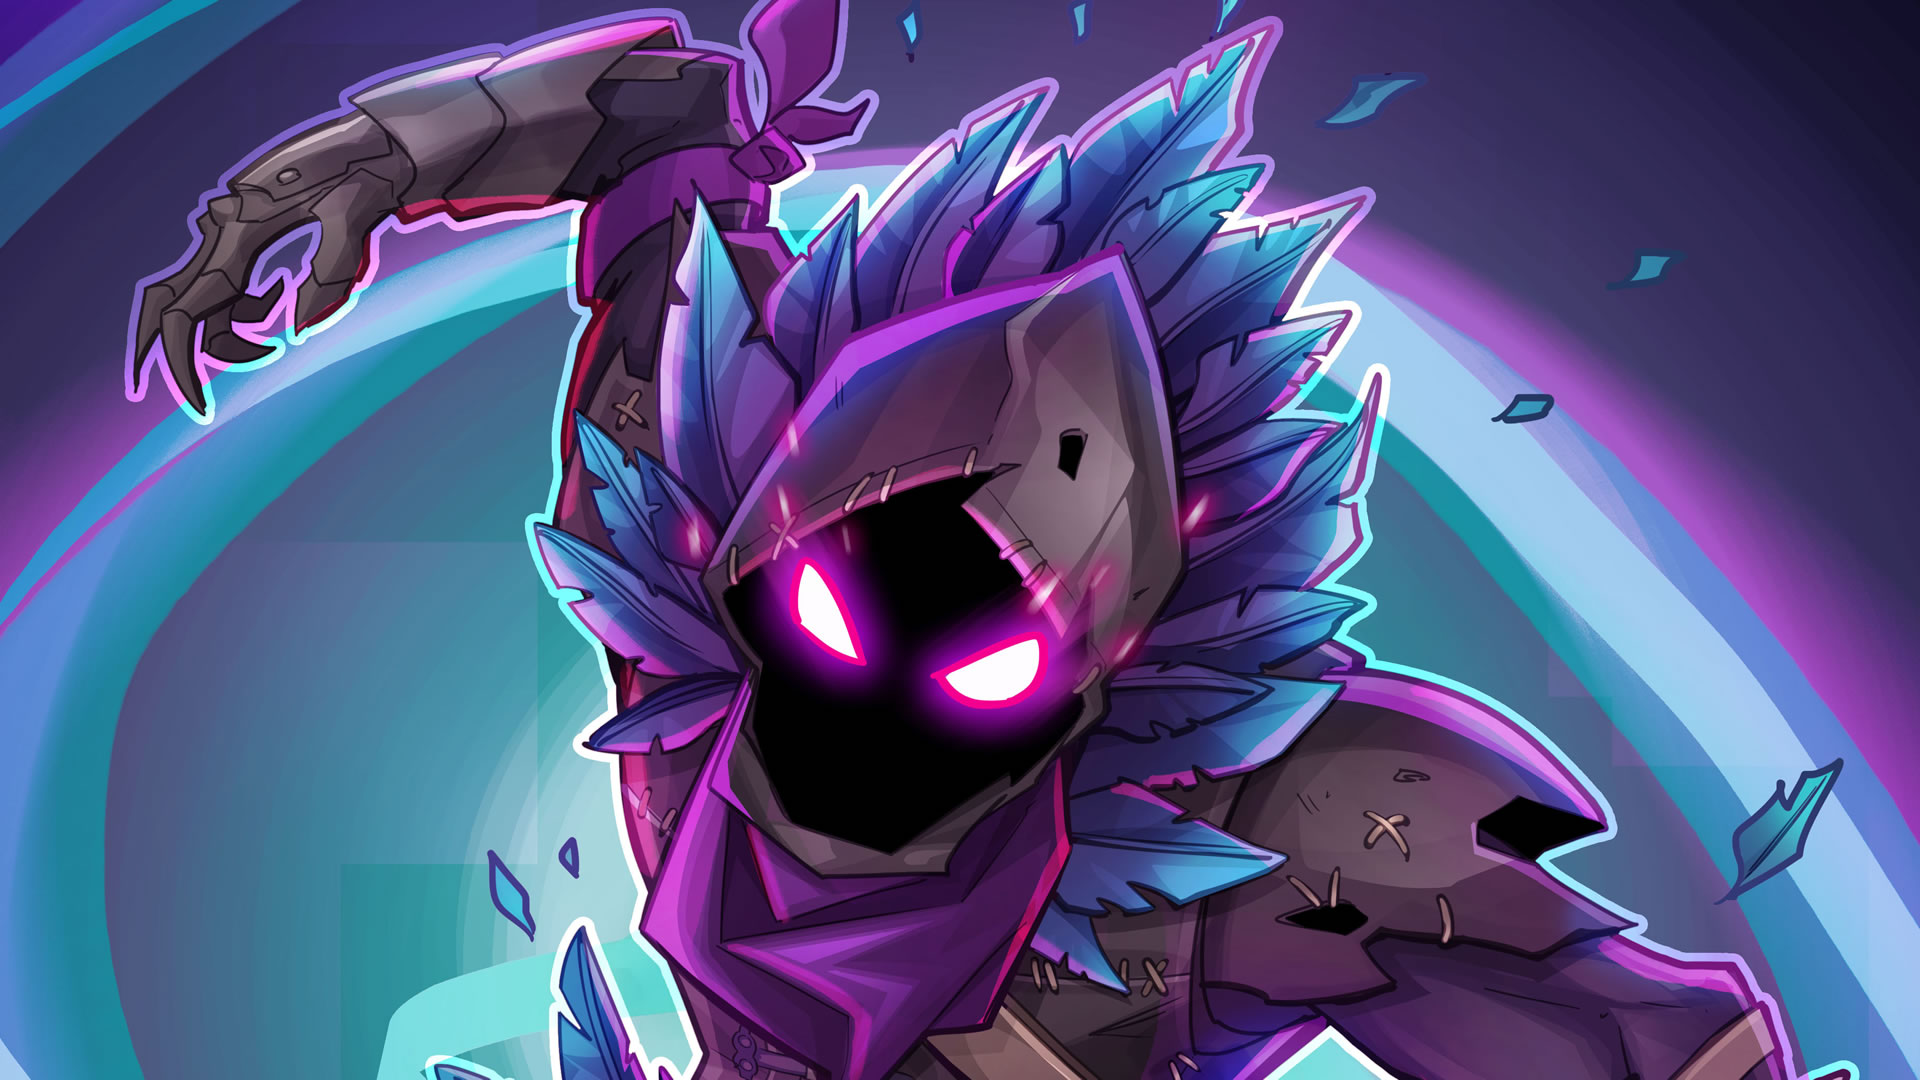 download wallpaper: Fortnite – Raven wallpaper